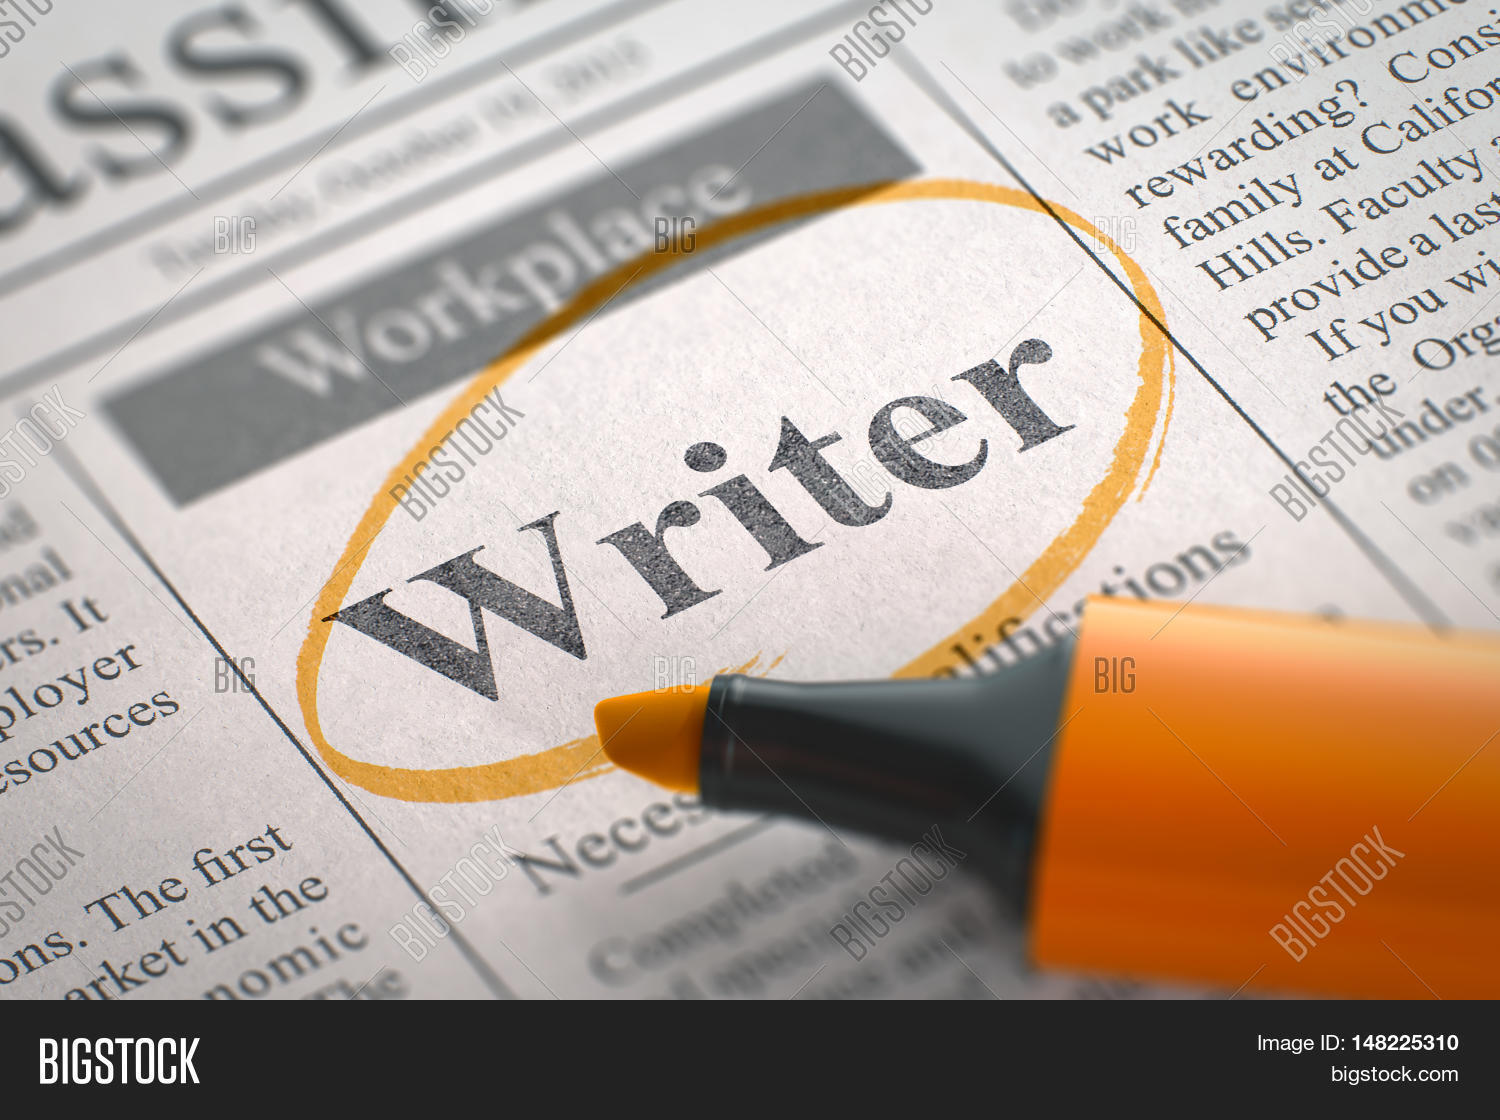 writer vacancy newspaper circled image photo bigstock writer vacancy in newspaper circled a orange highlighter blurred image selective